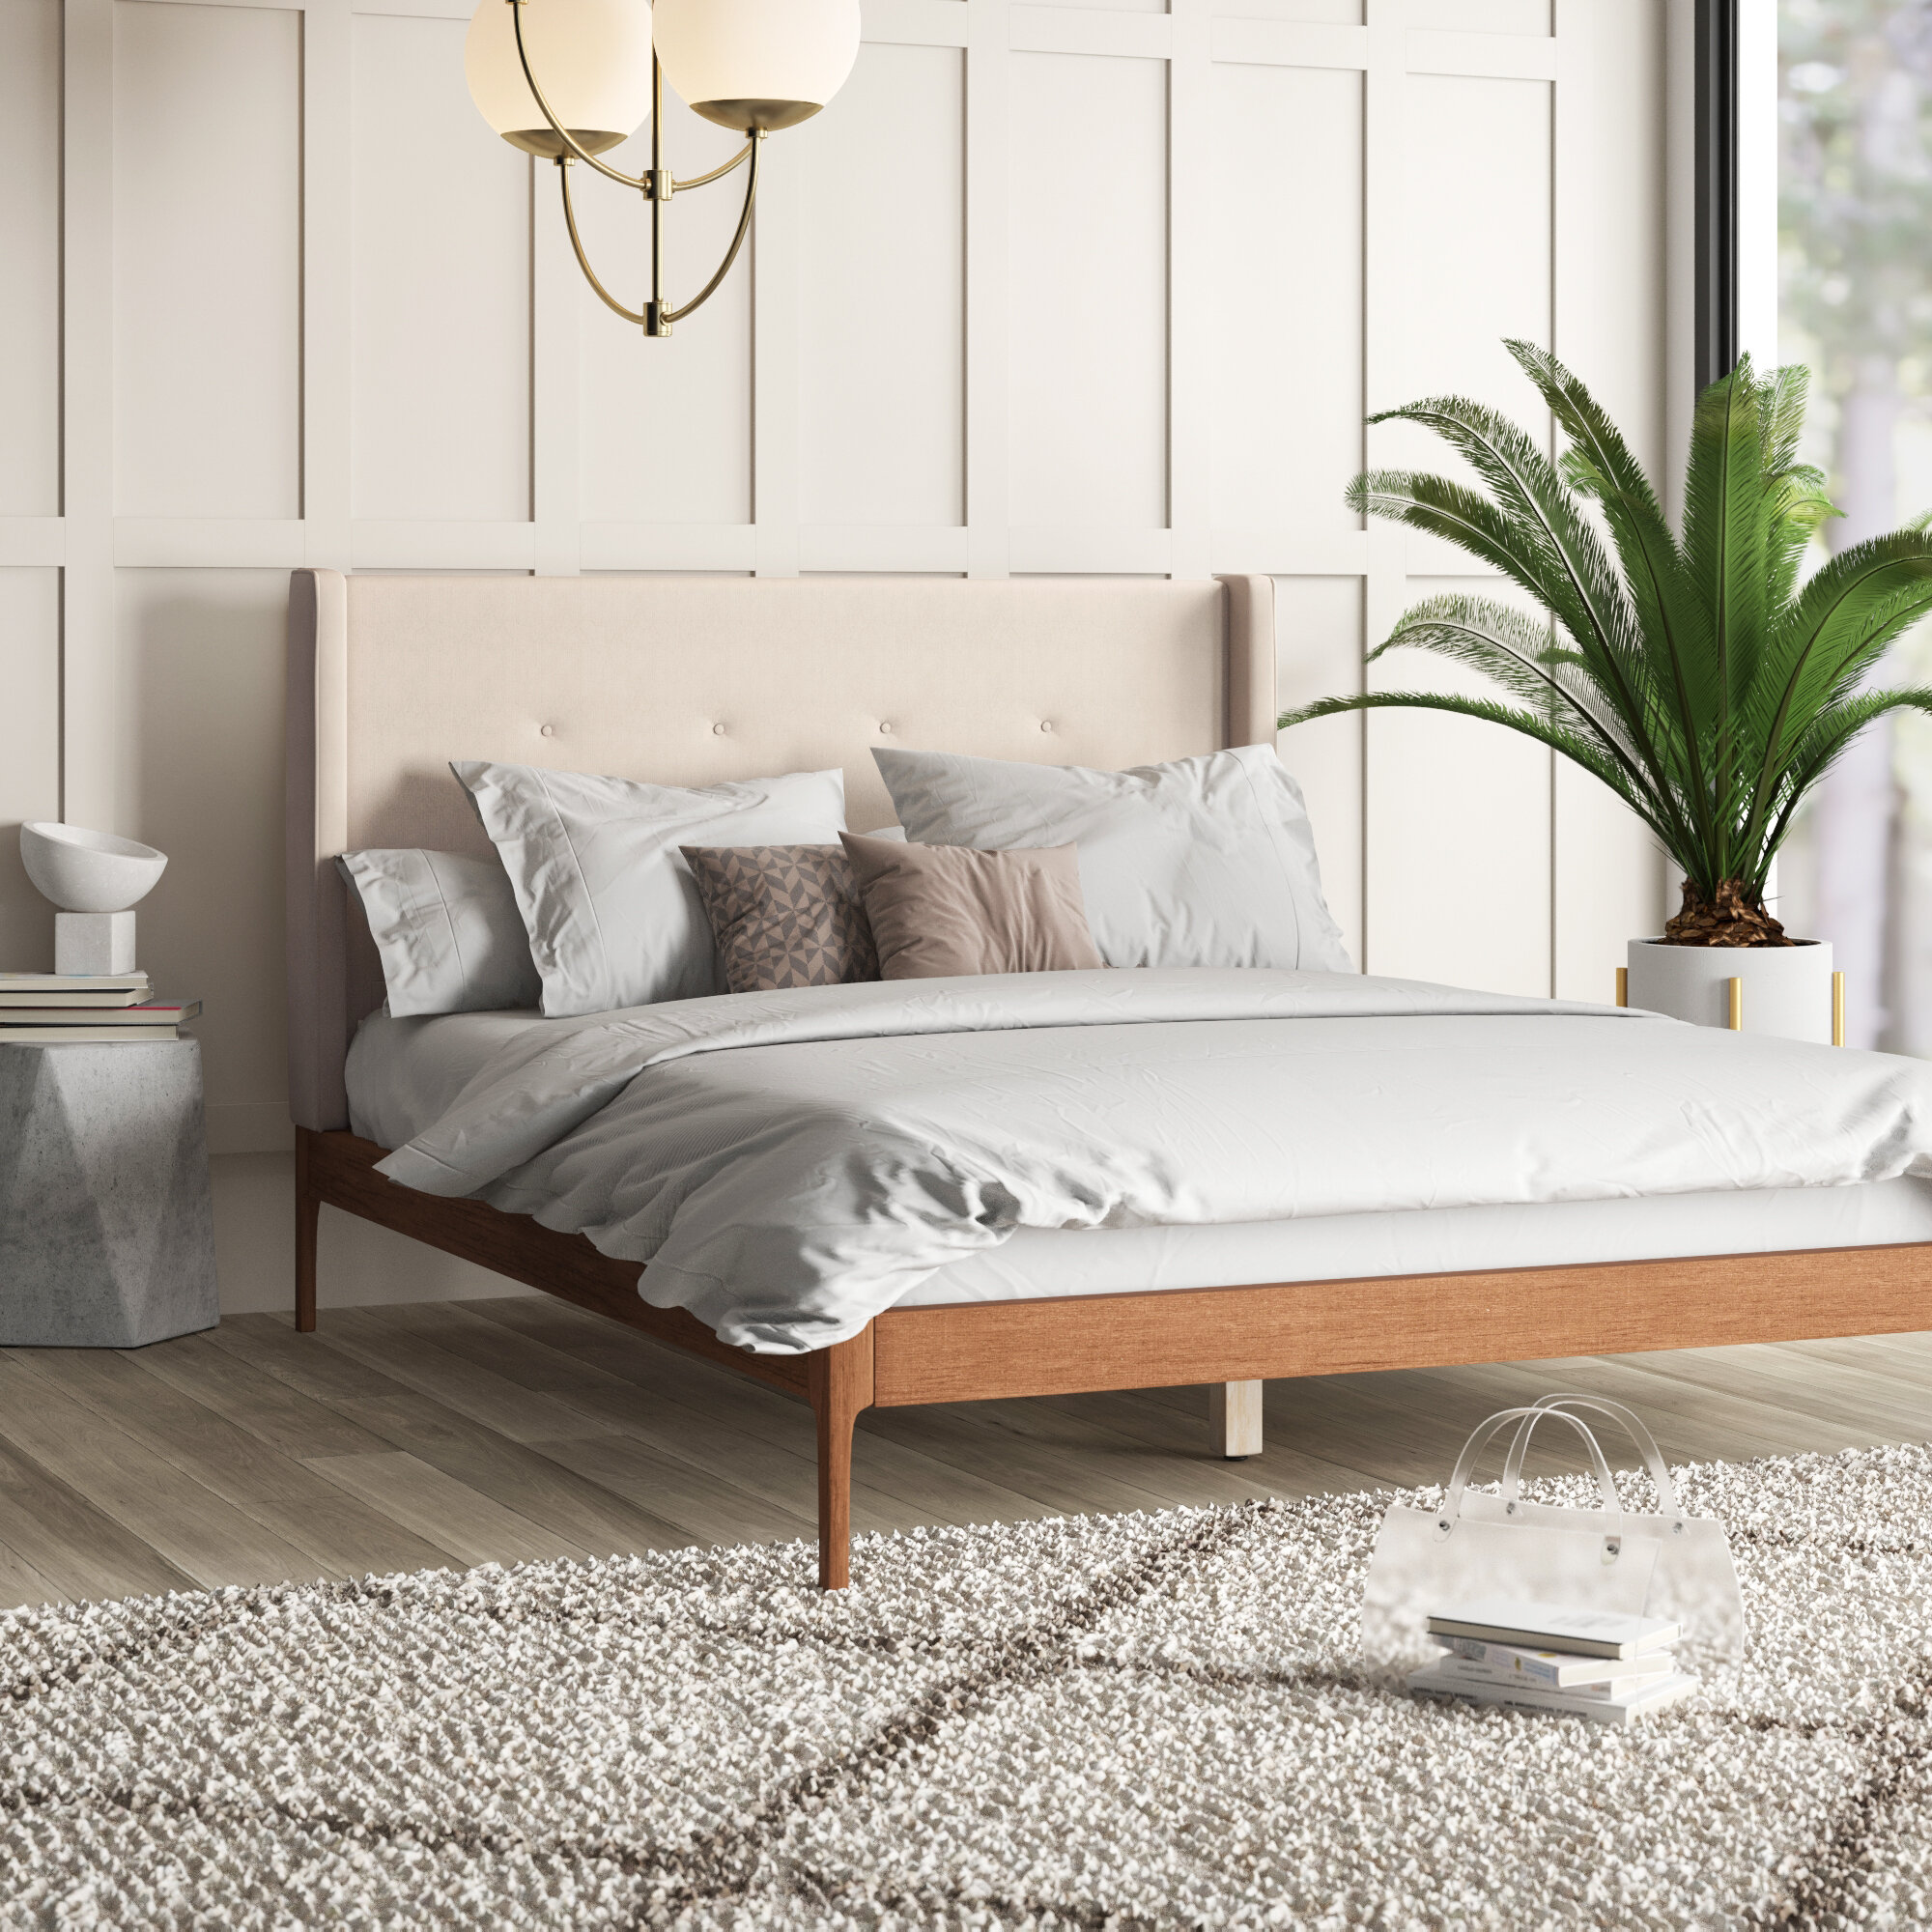 Bohemian Platform Beds You Ll Love In 2021 Wayfair